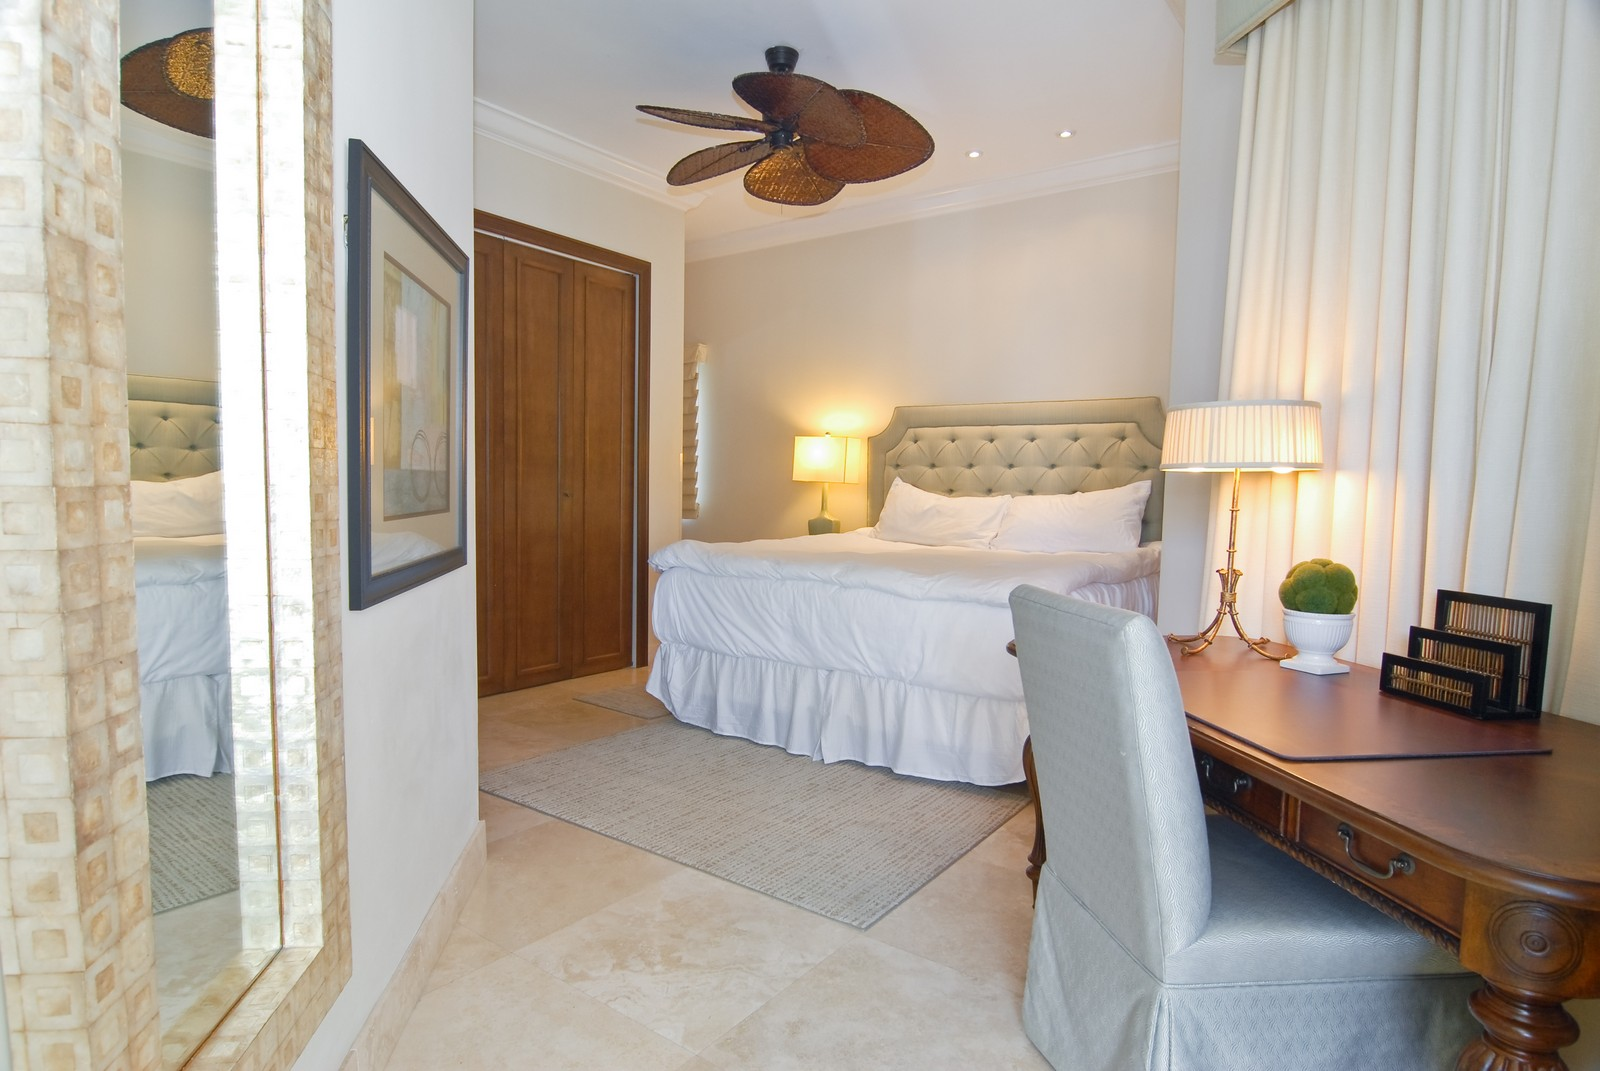 Real Estate Photography - 15521 Fisher Island Dr, Fisher Island, FL, 33109 - Master Bedroom